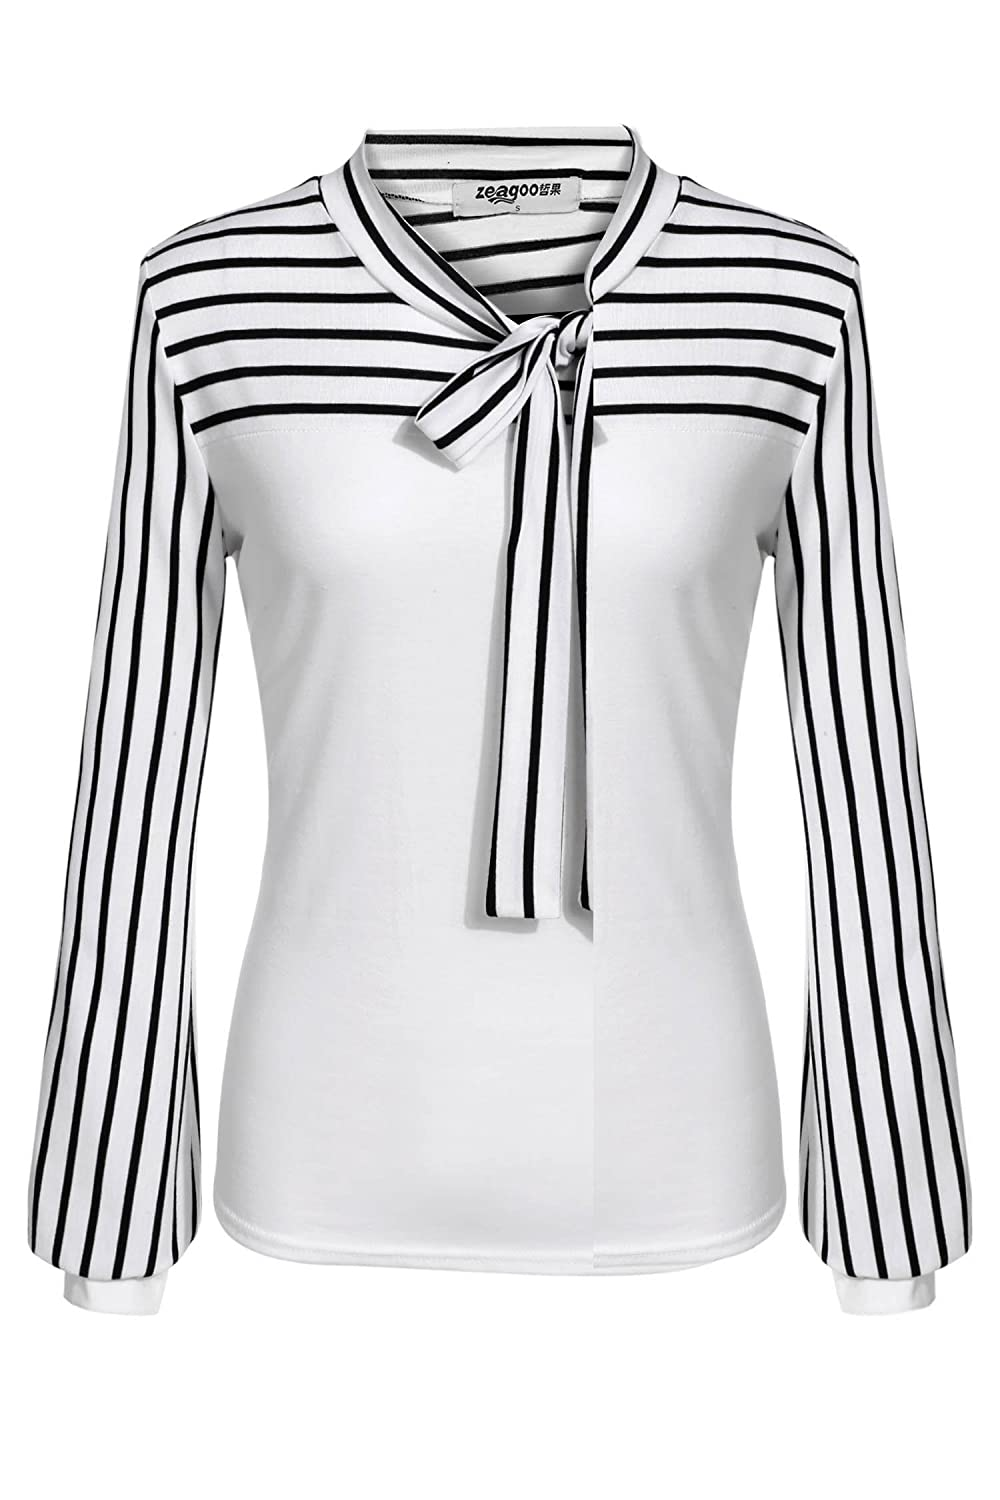 Zeagoo Ladies Tie-bow Neck Striped Long Sleeve Splicing Autumn Shirt